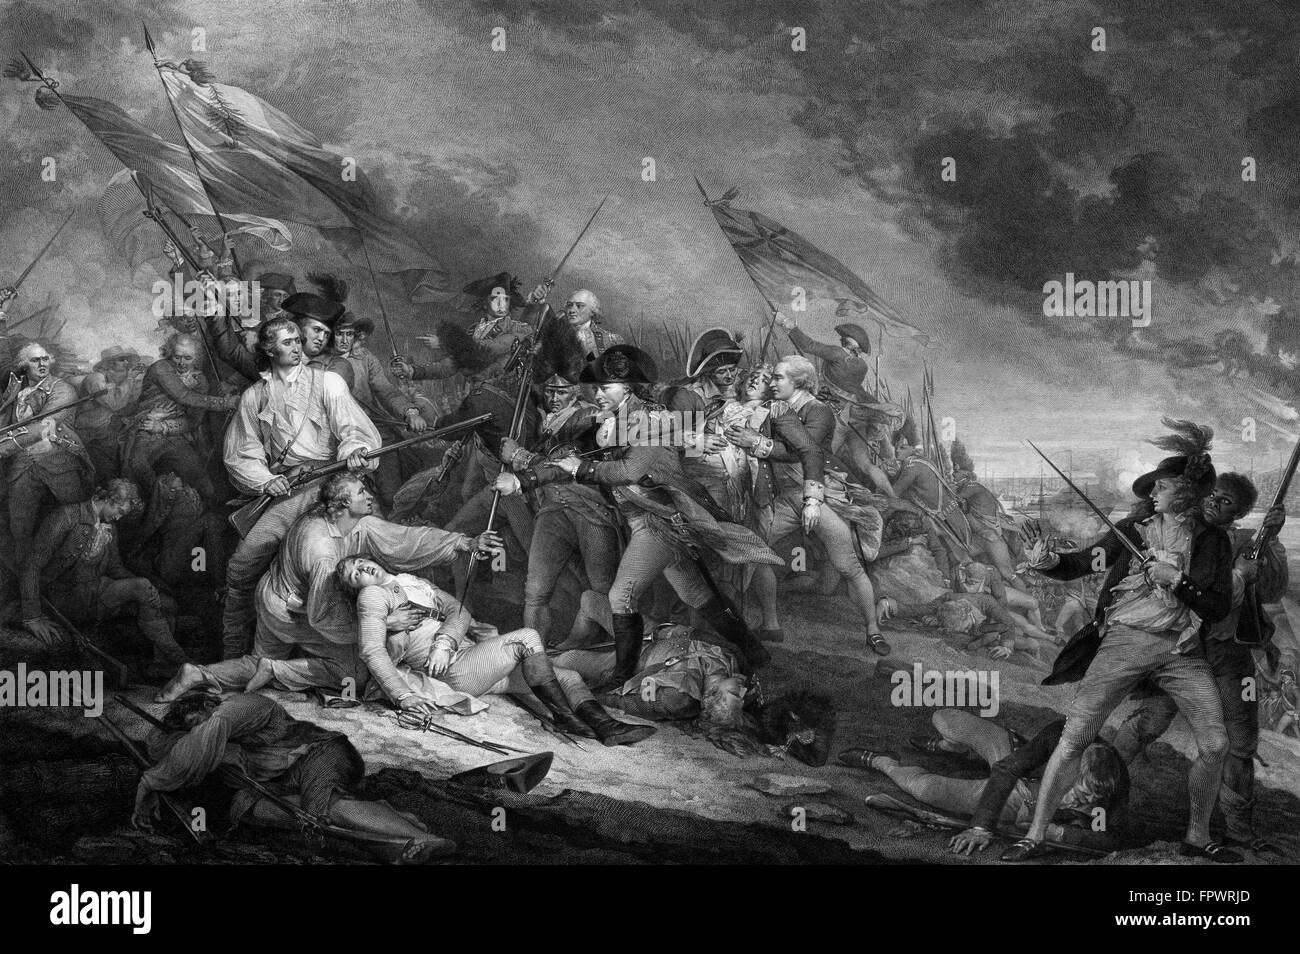 an analysis of the battle of bunker hill during the american revolutionary war Battle of bunker hill by howard pyle (circa 1897)  second coming of a revolutionary war patriot 5 comments  journal of the american revolution is the leading.